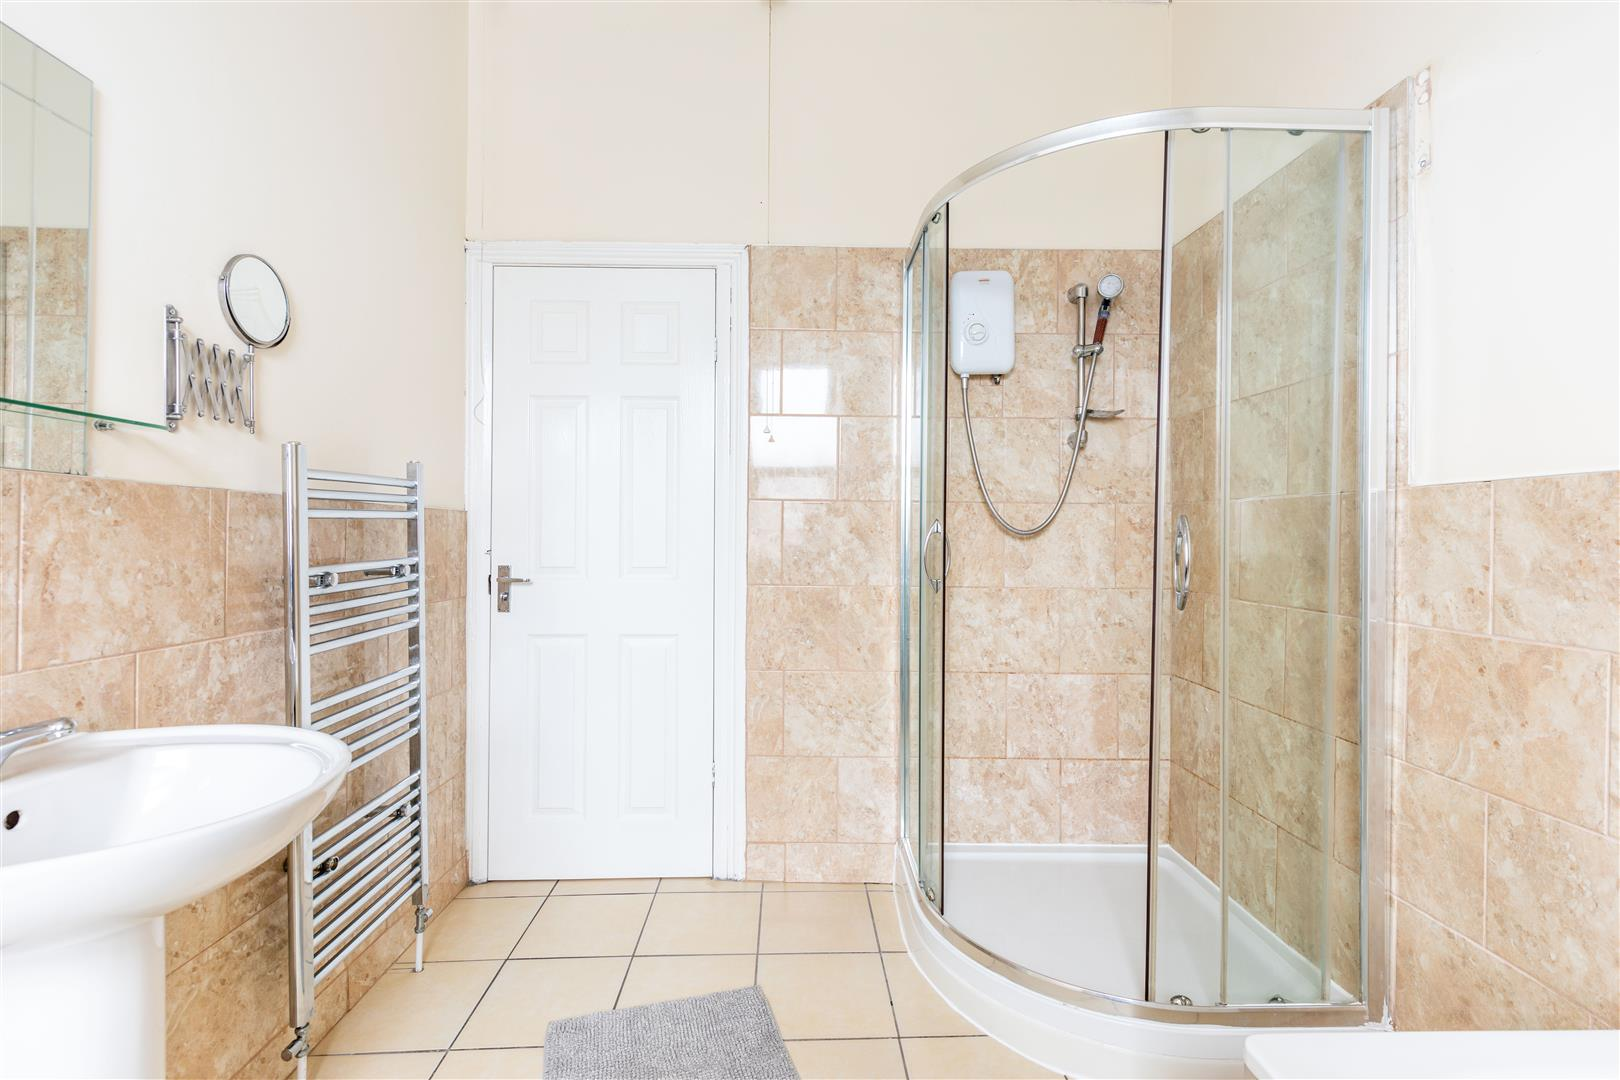 5 bed terraced house to rent in Newcastle Upon Tyne, NE6 5BT  - Property Image 13